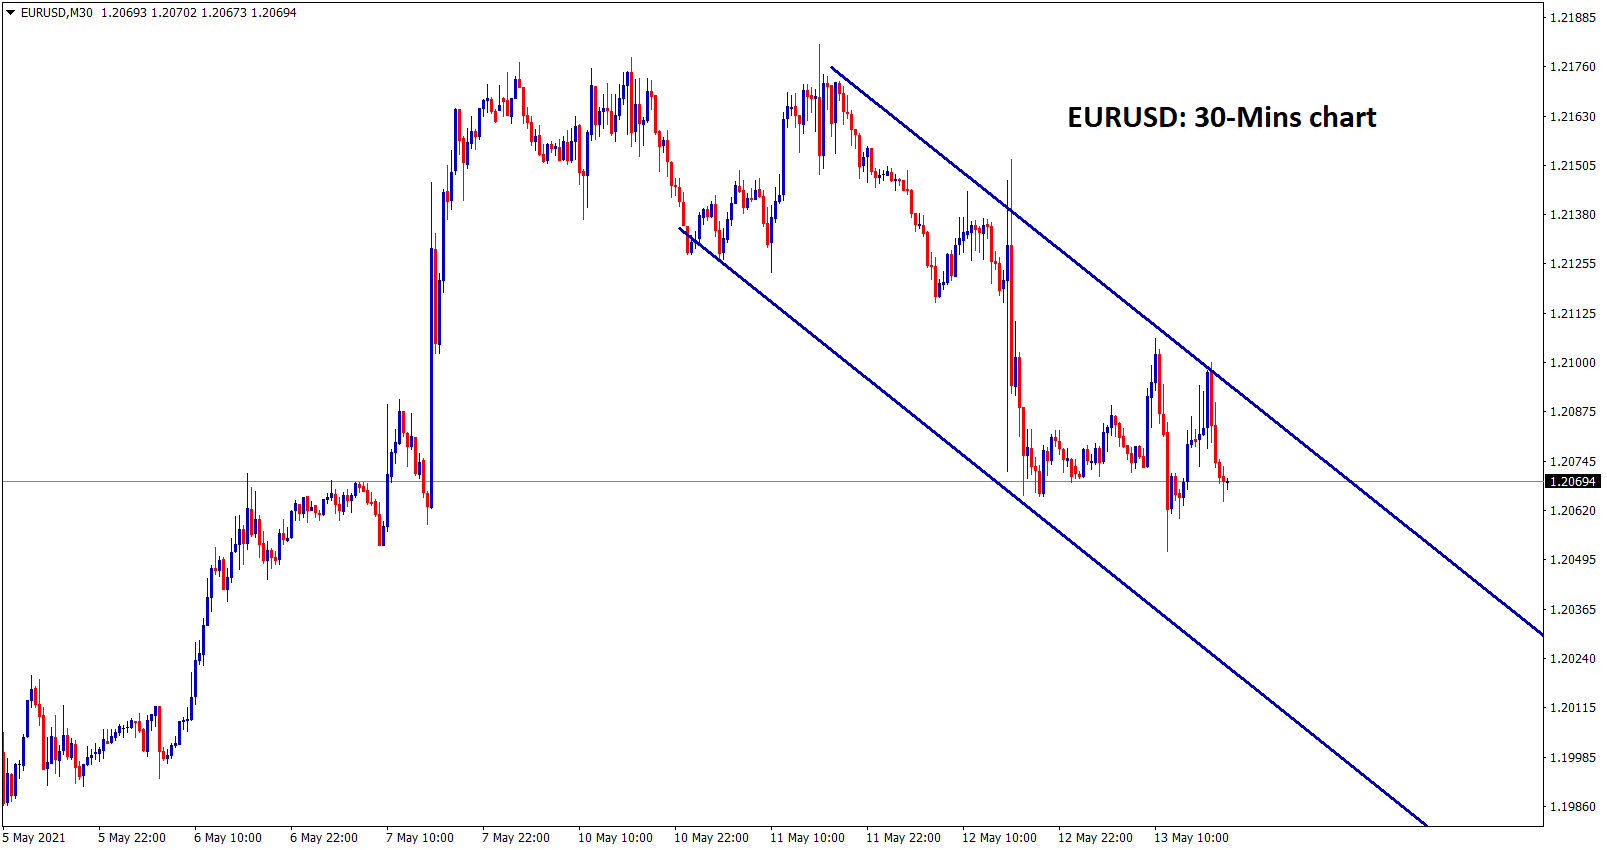 EURUSD moving in a descending channel in 30 minutes chart